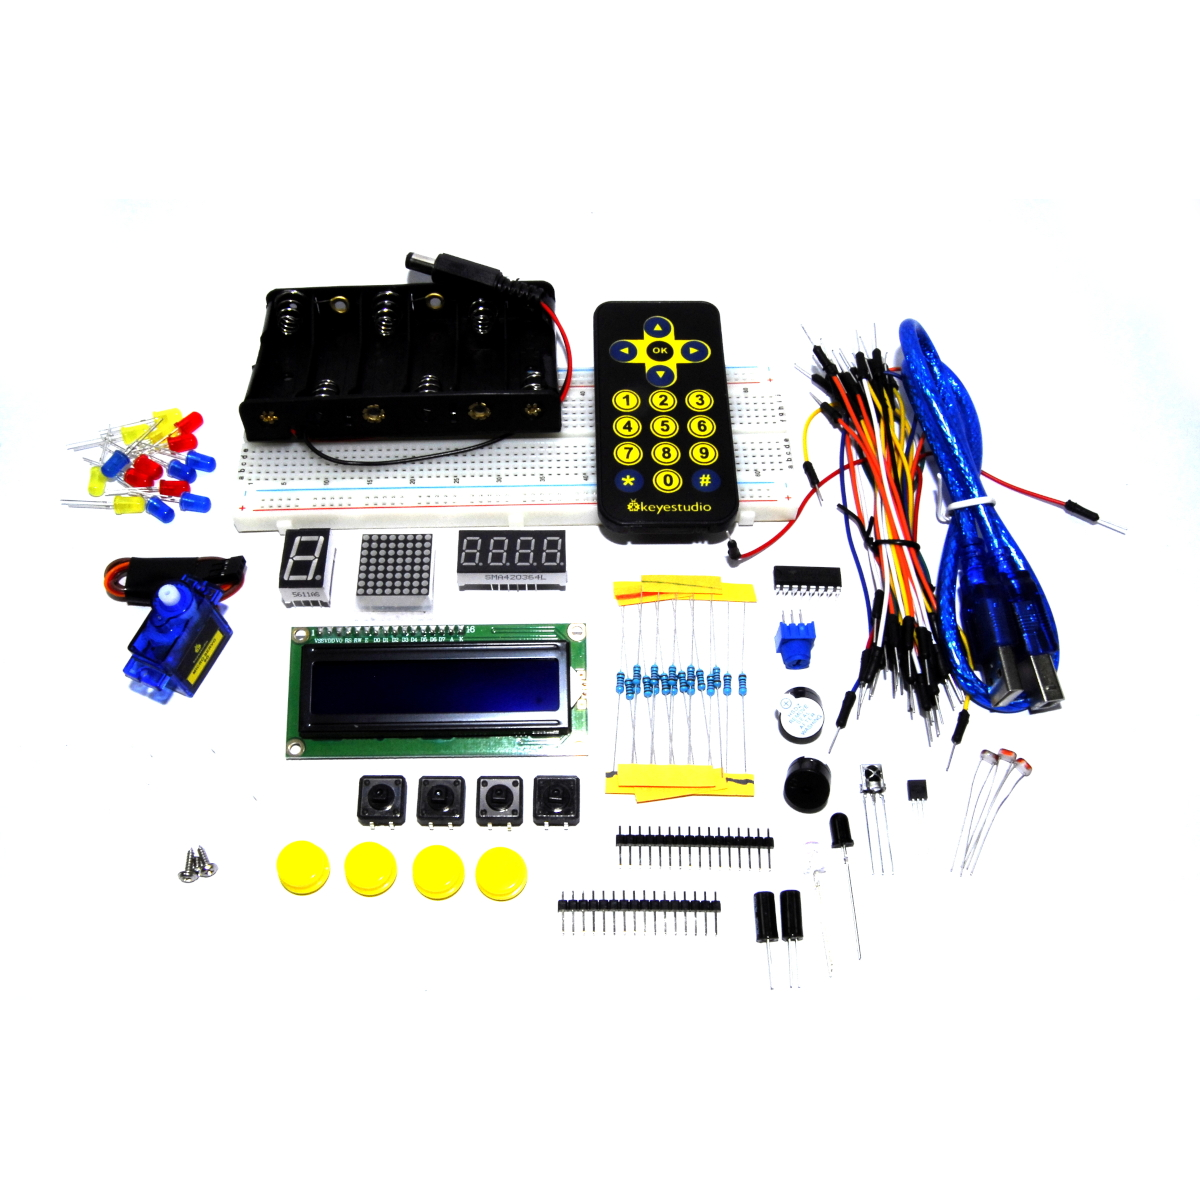 Details about Keyestudio Basic Starter Set KS0072 16x2 Kit Project Arduino  UNO Flux Workshop